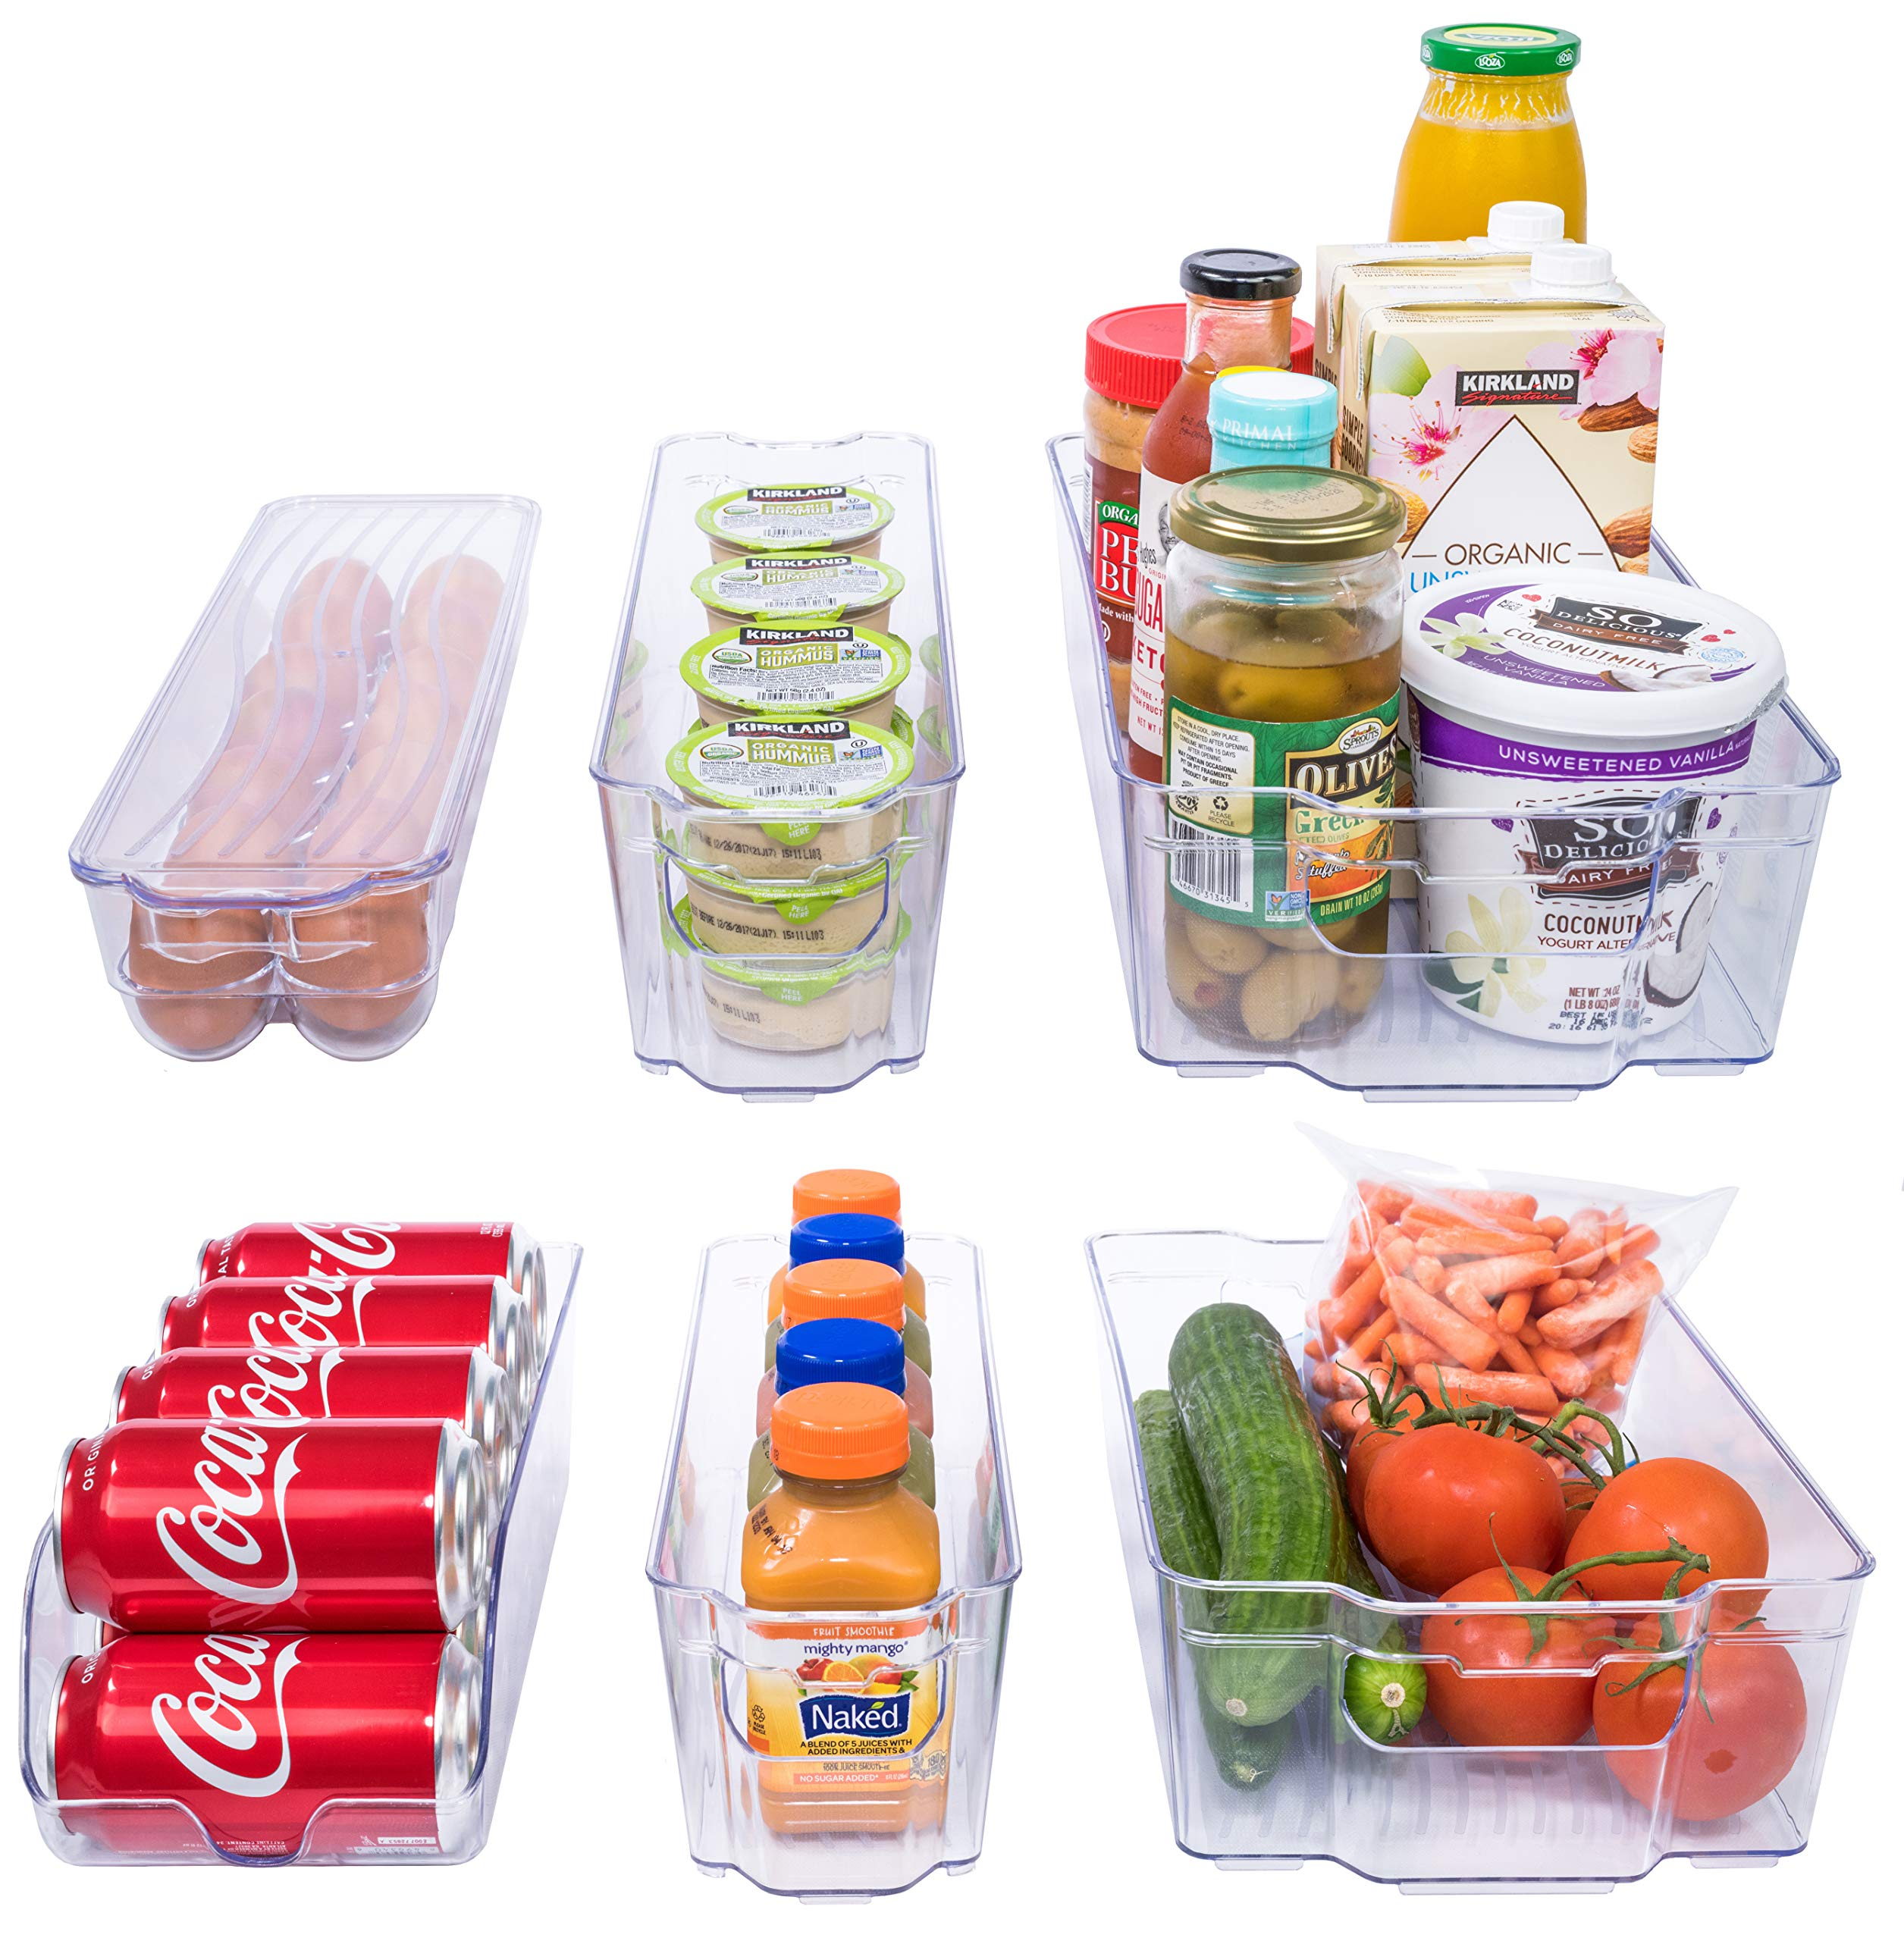 Adorn Home 6 Piece Refrigerator/Freezer Organizer Bins with Handles | Stackable Storage Containers | Pantry Storage Bins | Clear | 6 - PC. Set | by Adorn Home Essentials